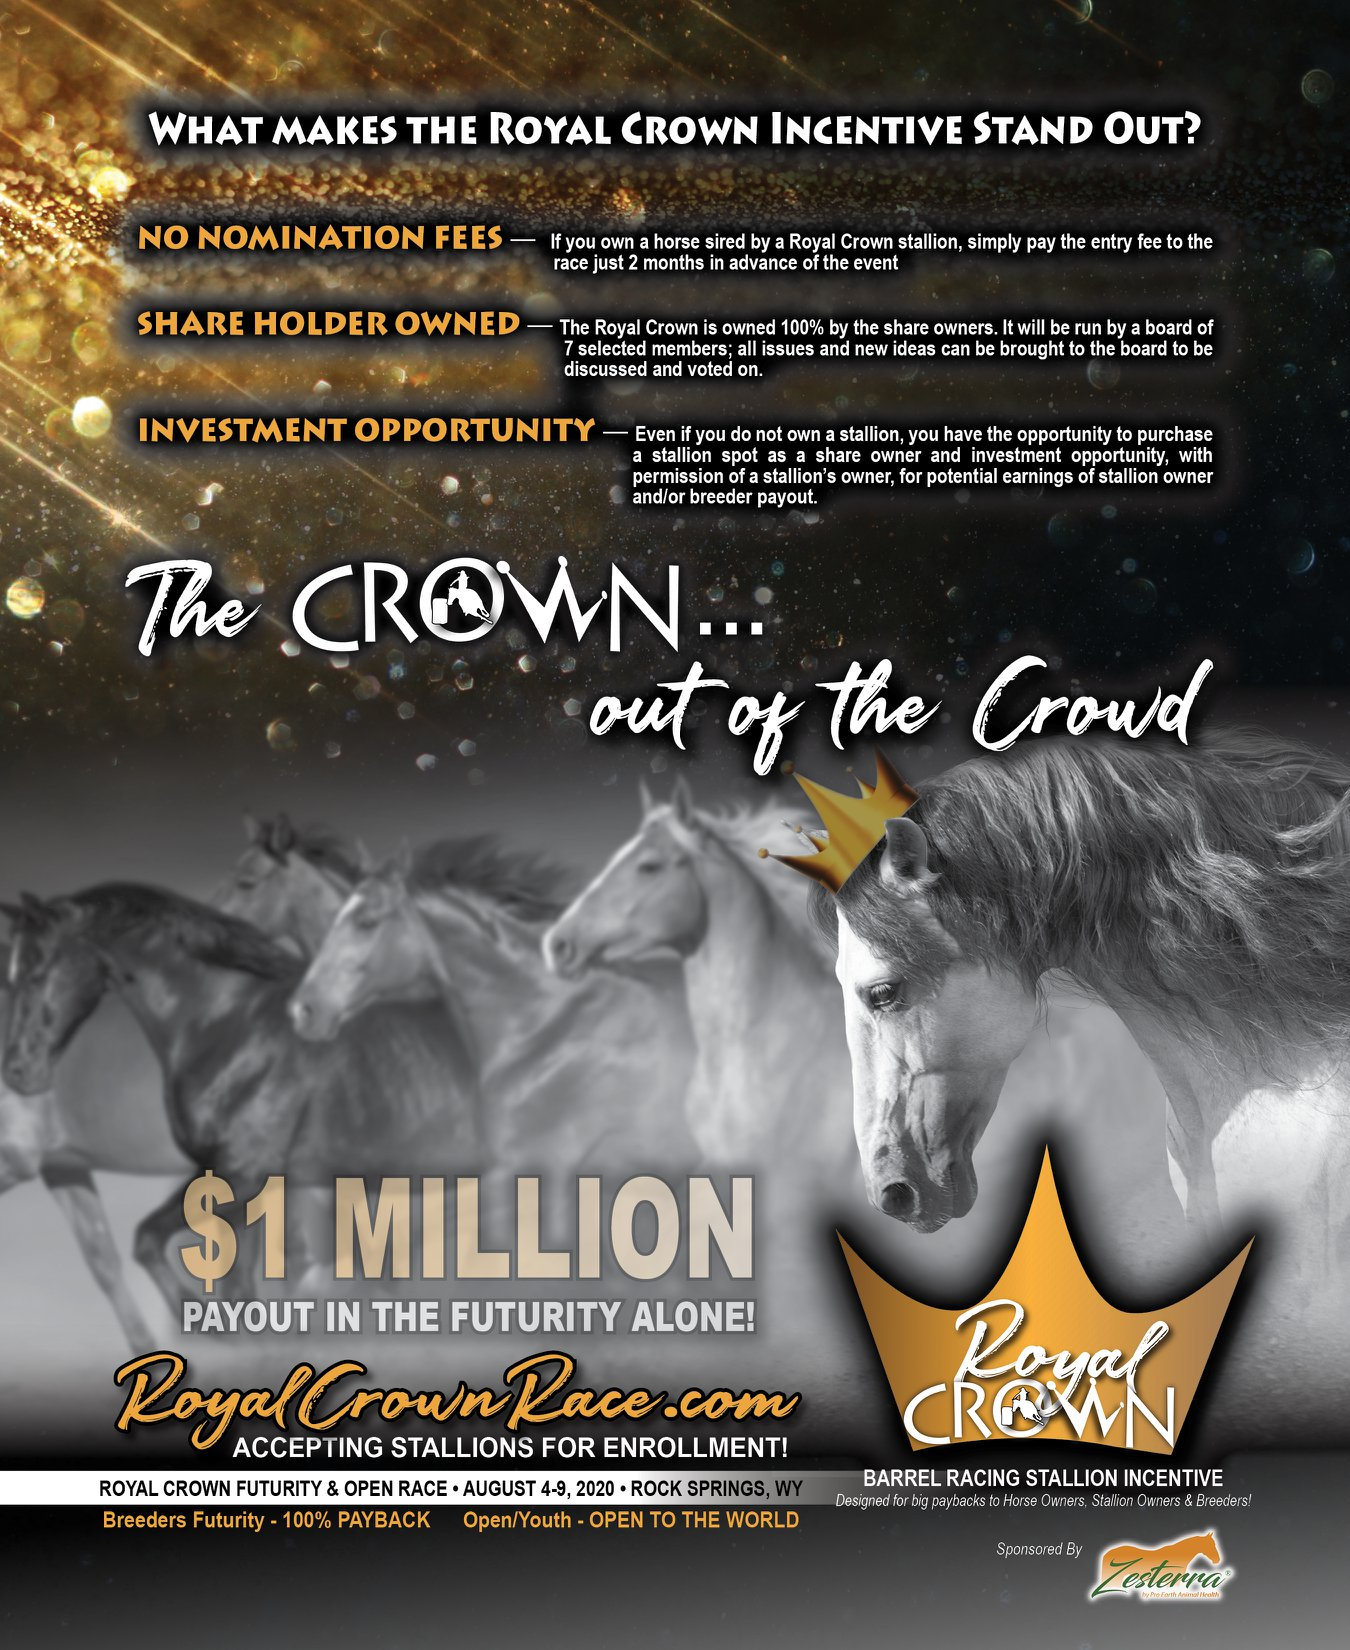 What makes the Royal Crown Stallion Incentive Stand Out?